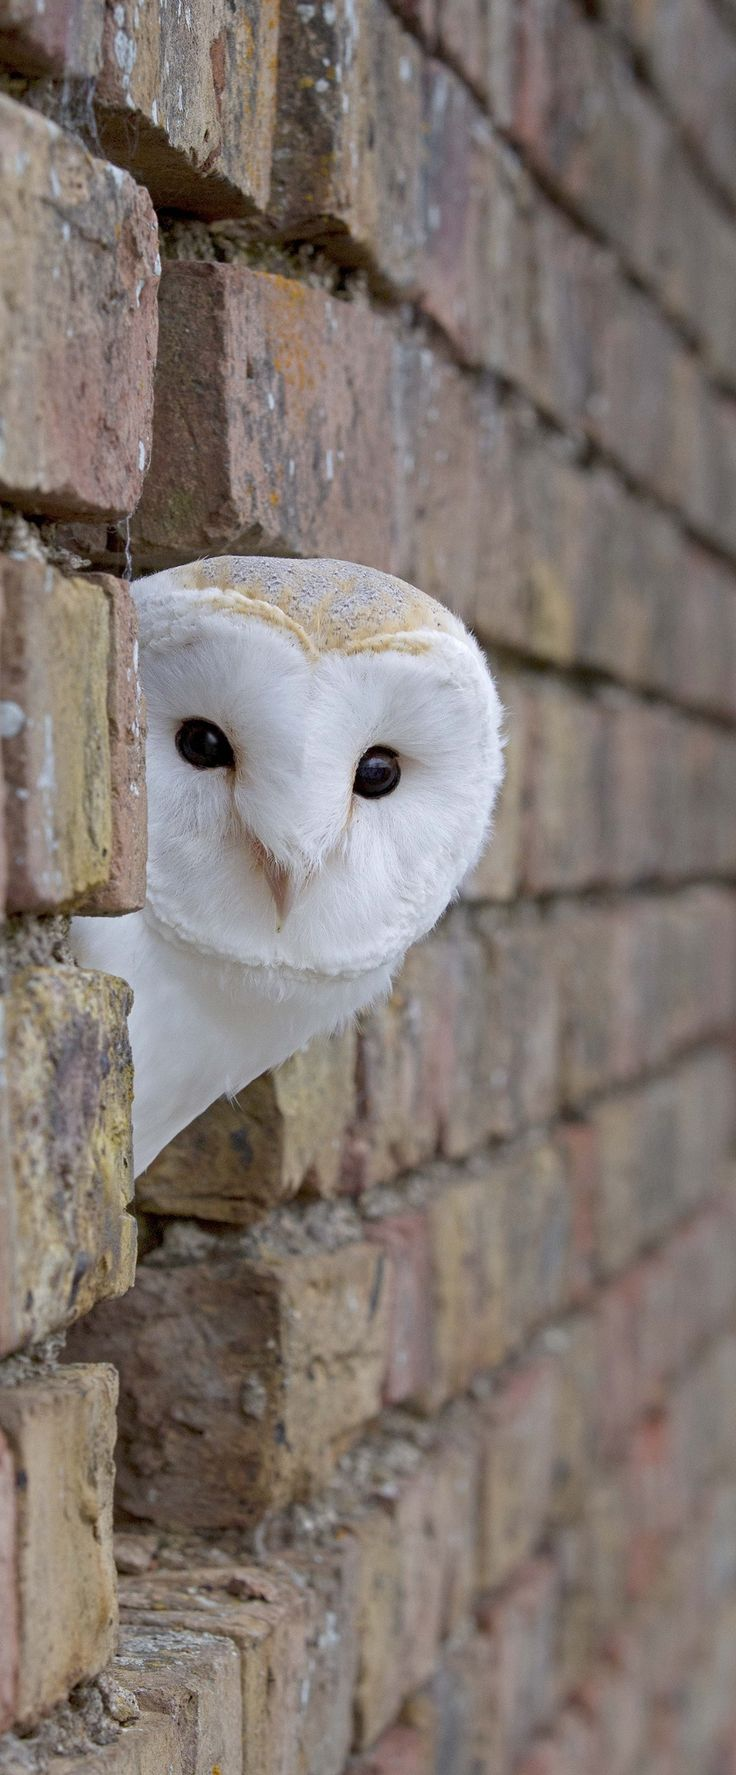 Barn Owl by James Boardman Woodend - A rescue animal in the gentle care of the  Barn Owl trust.